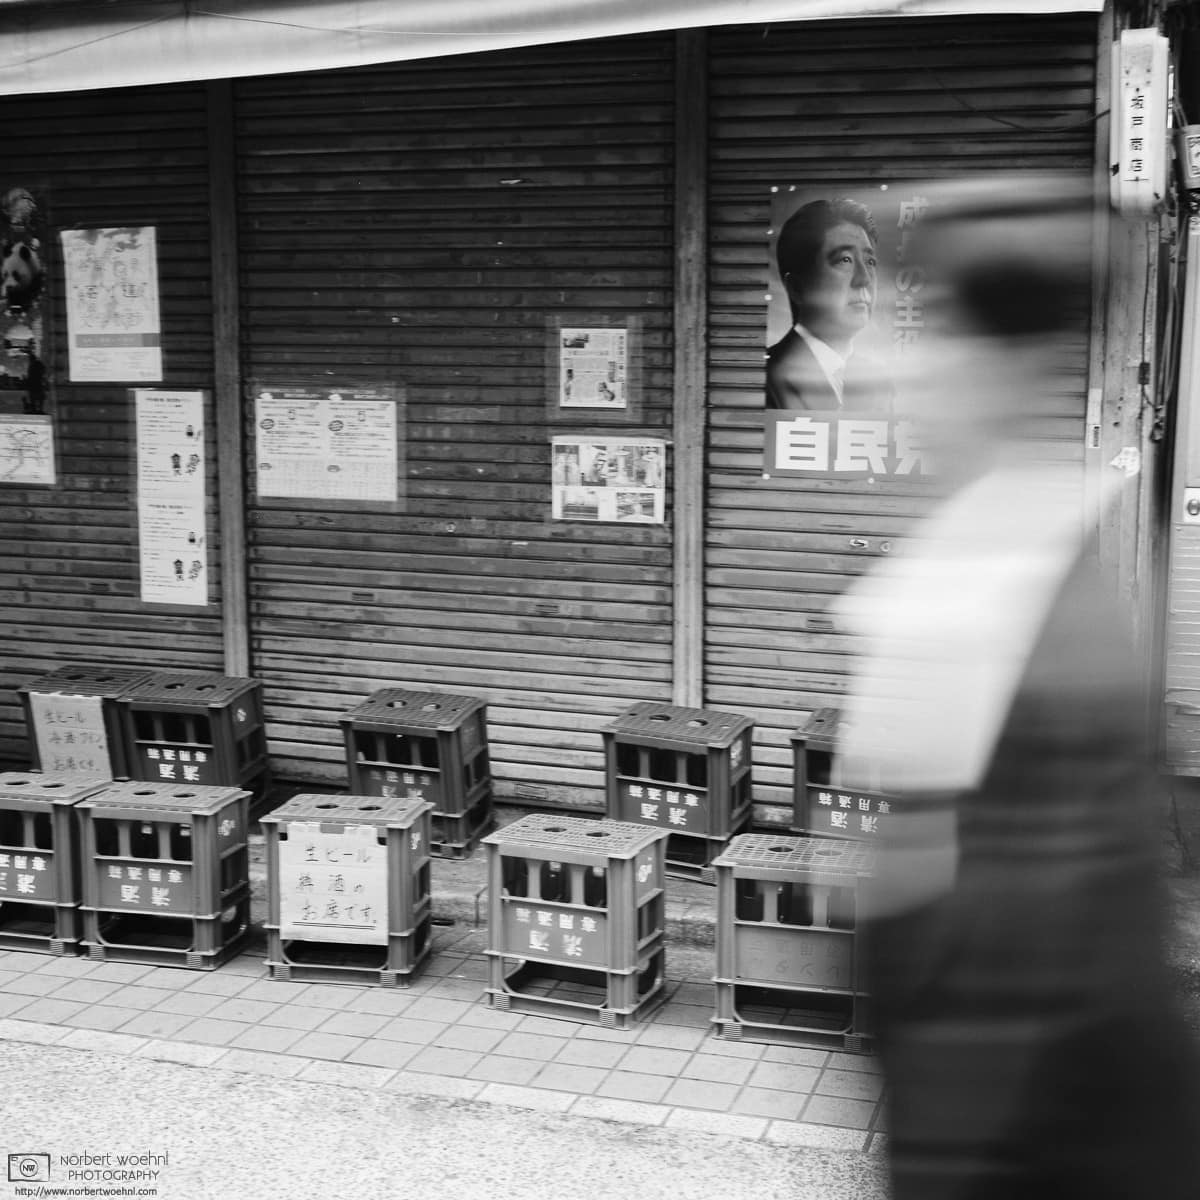 At Yanaka Ginza in Tokyo, Japan, a woman is walking past a shop that is decorated with a poster of Shinzo Abe.